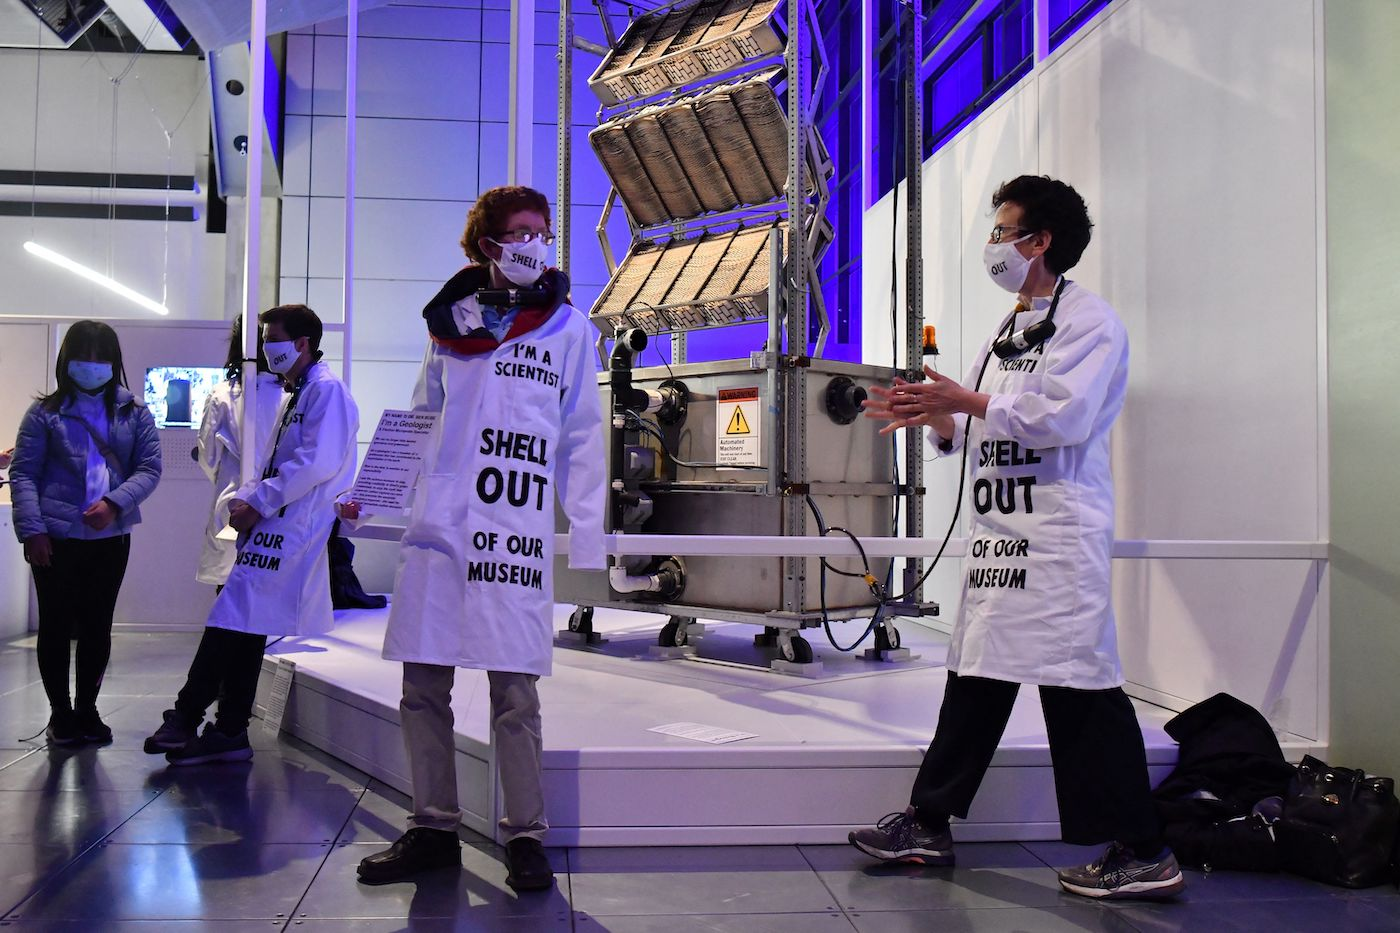 Protestors chain themselves to a museum exhibit with coats that say I am a scientist, Shell out